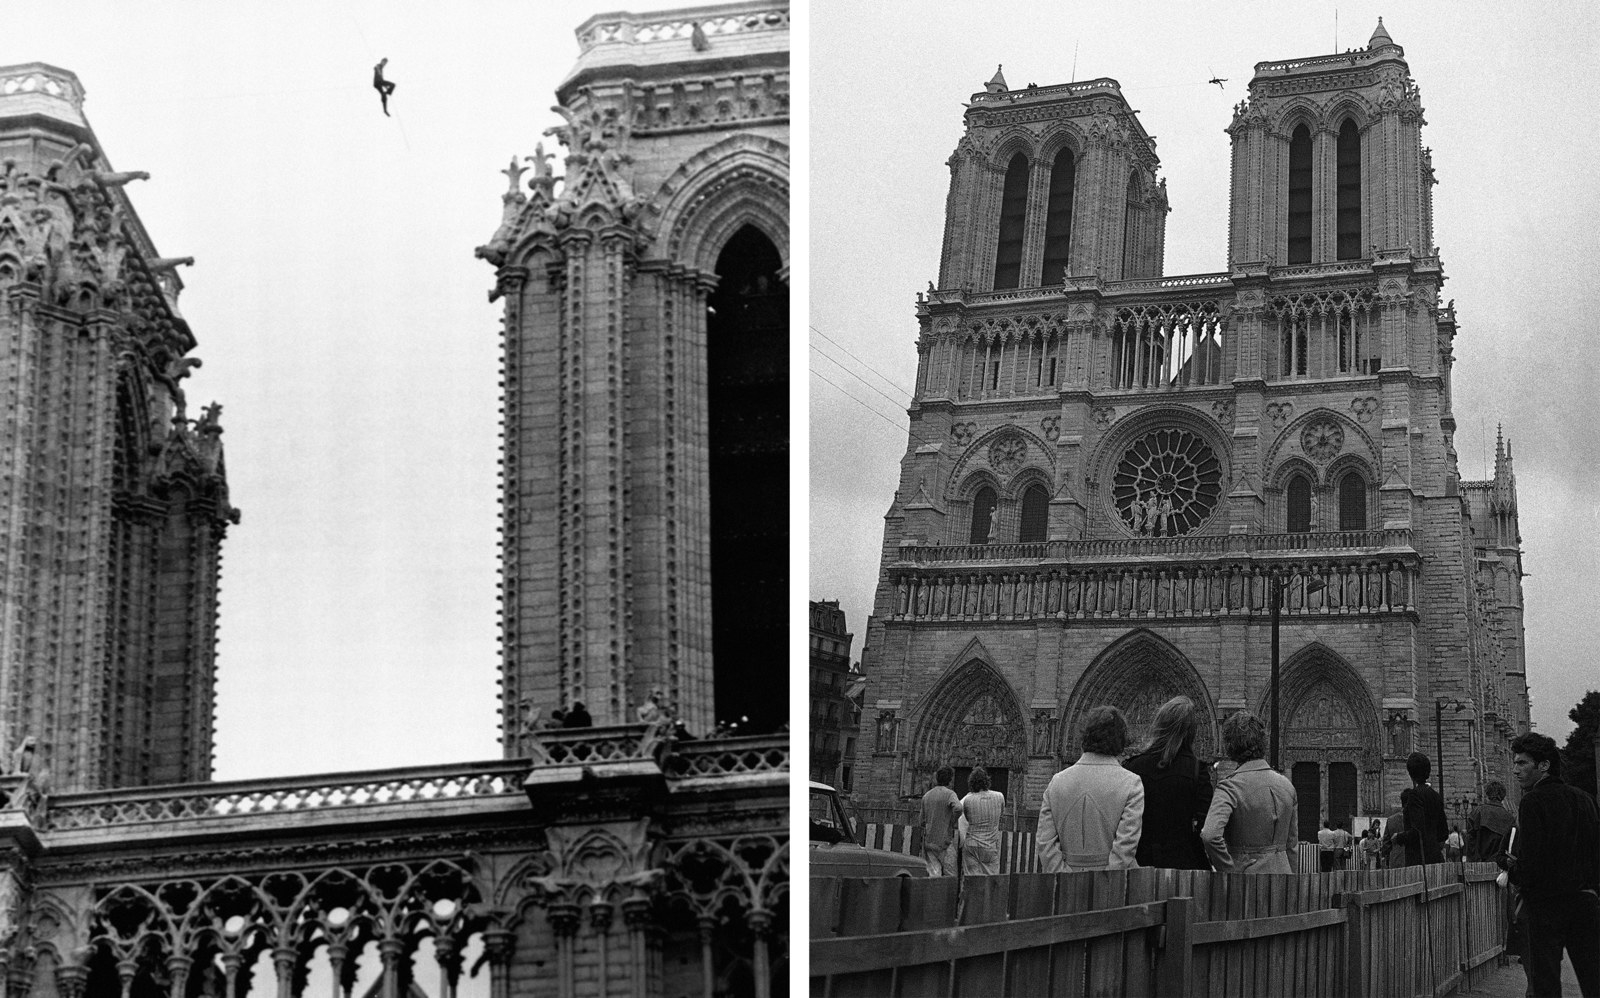 Philippe Petit, a 21-year-old professional tightrope walker, perches 225 feet above the ground, between the two towers of Notre Dame cathedral, Paris, on June 26, 1971, during a stunt which lasted several hours, with police unable to bring him down.